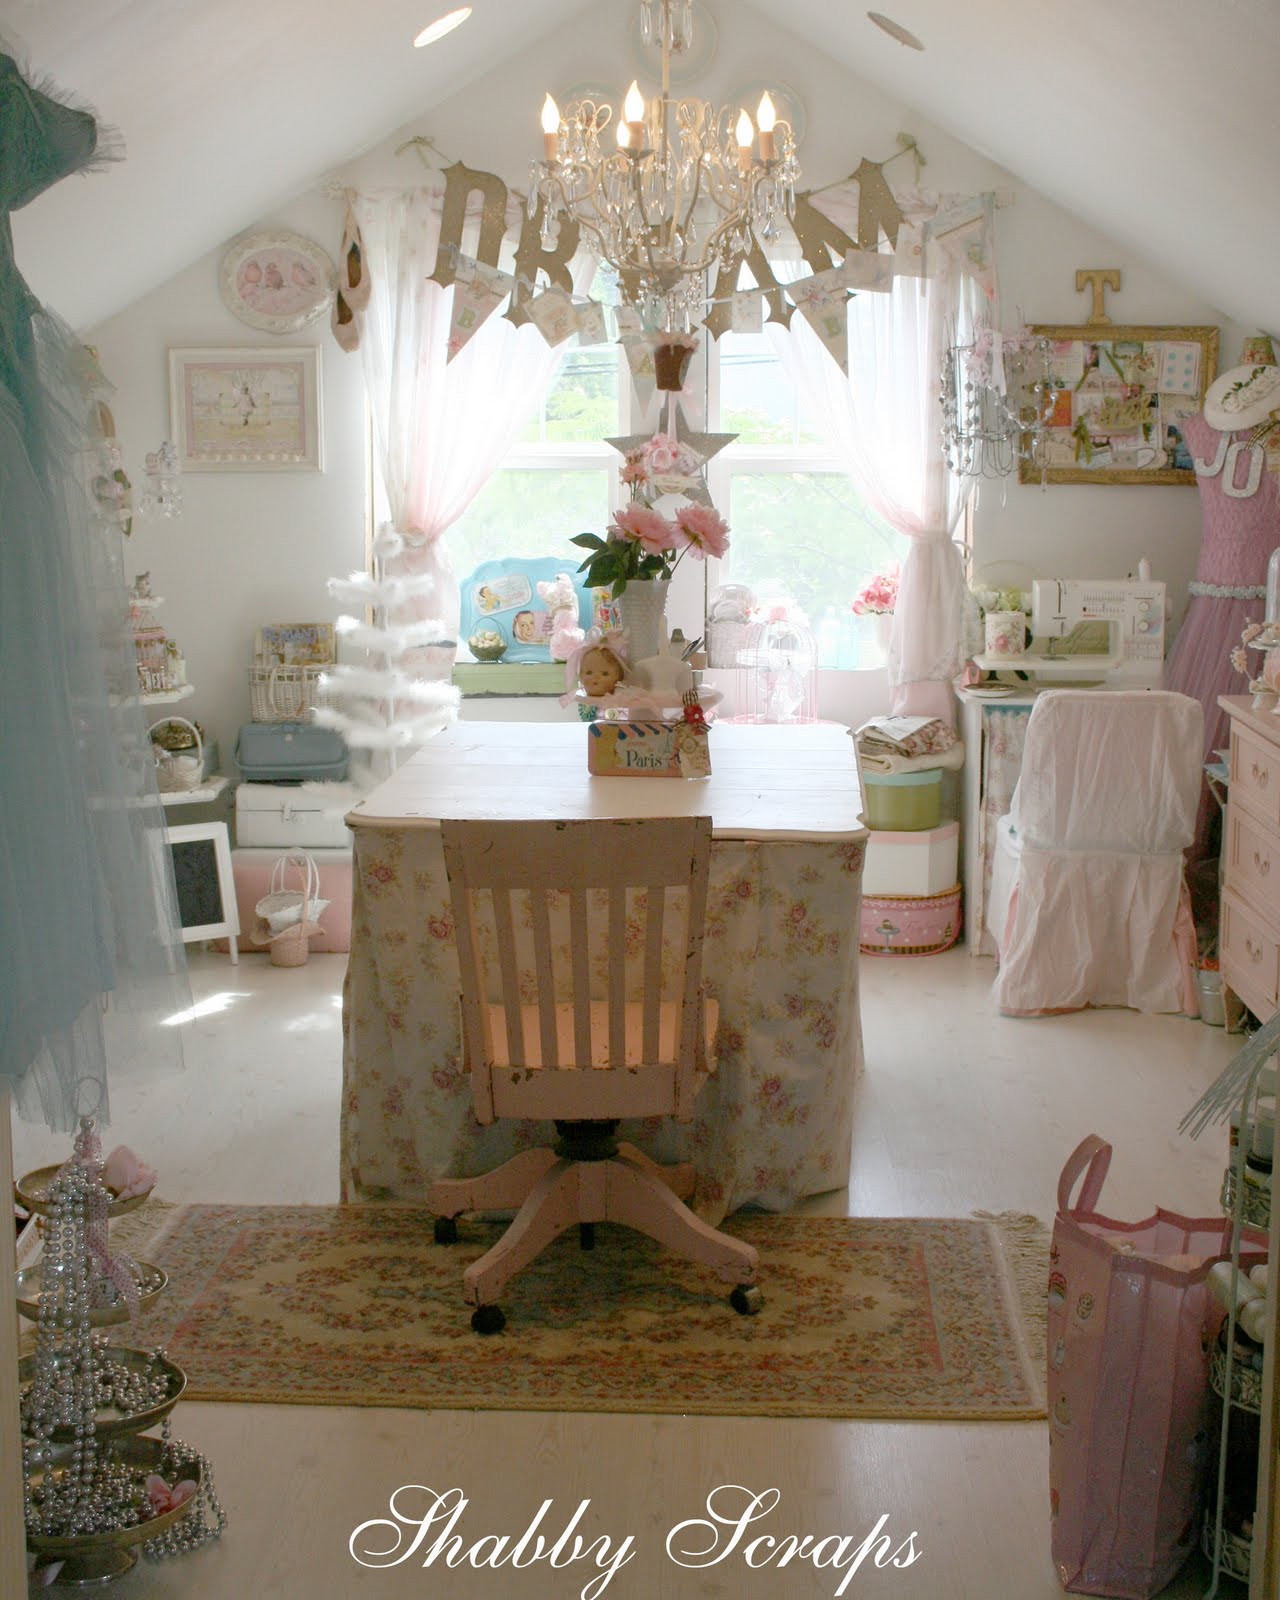 Best ideas about Shabby Chic Room . Save or Pin Shabby Chic Lofts and Attics Now.